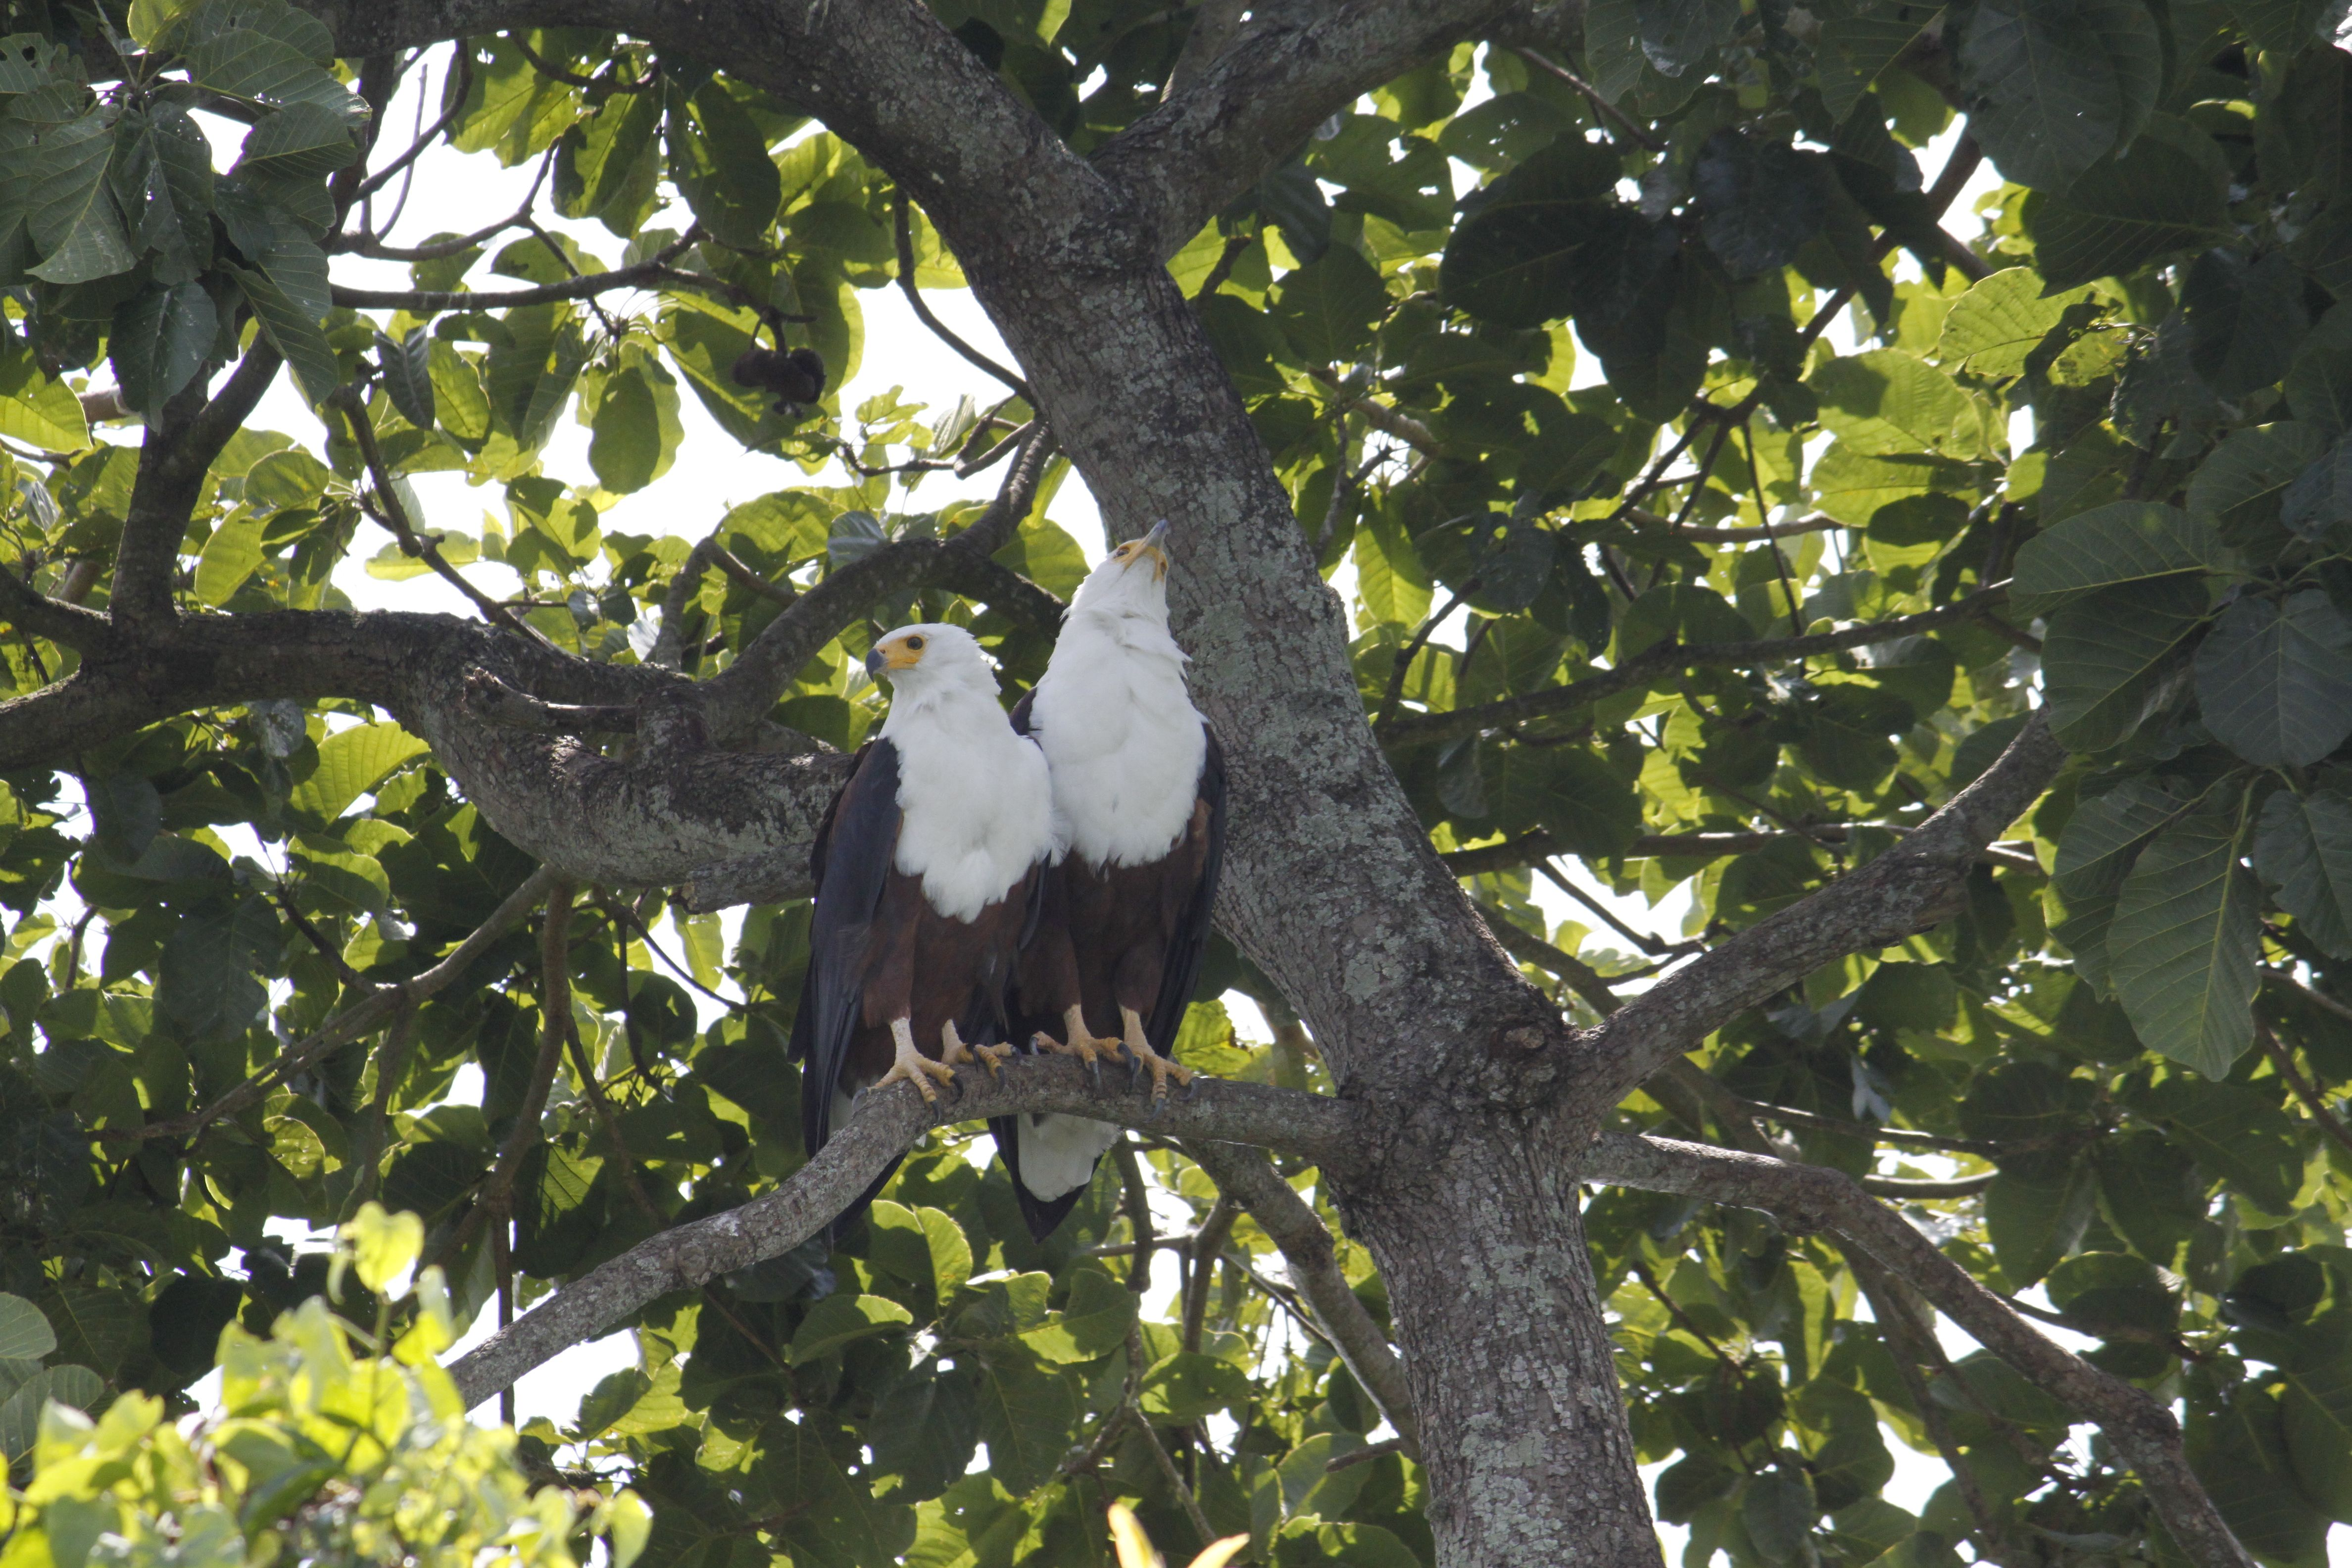 African fish Eagles by the banks of river Nile on a tree.